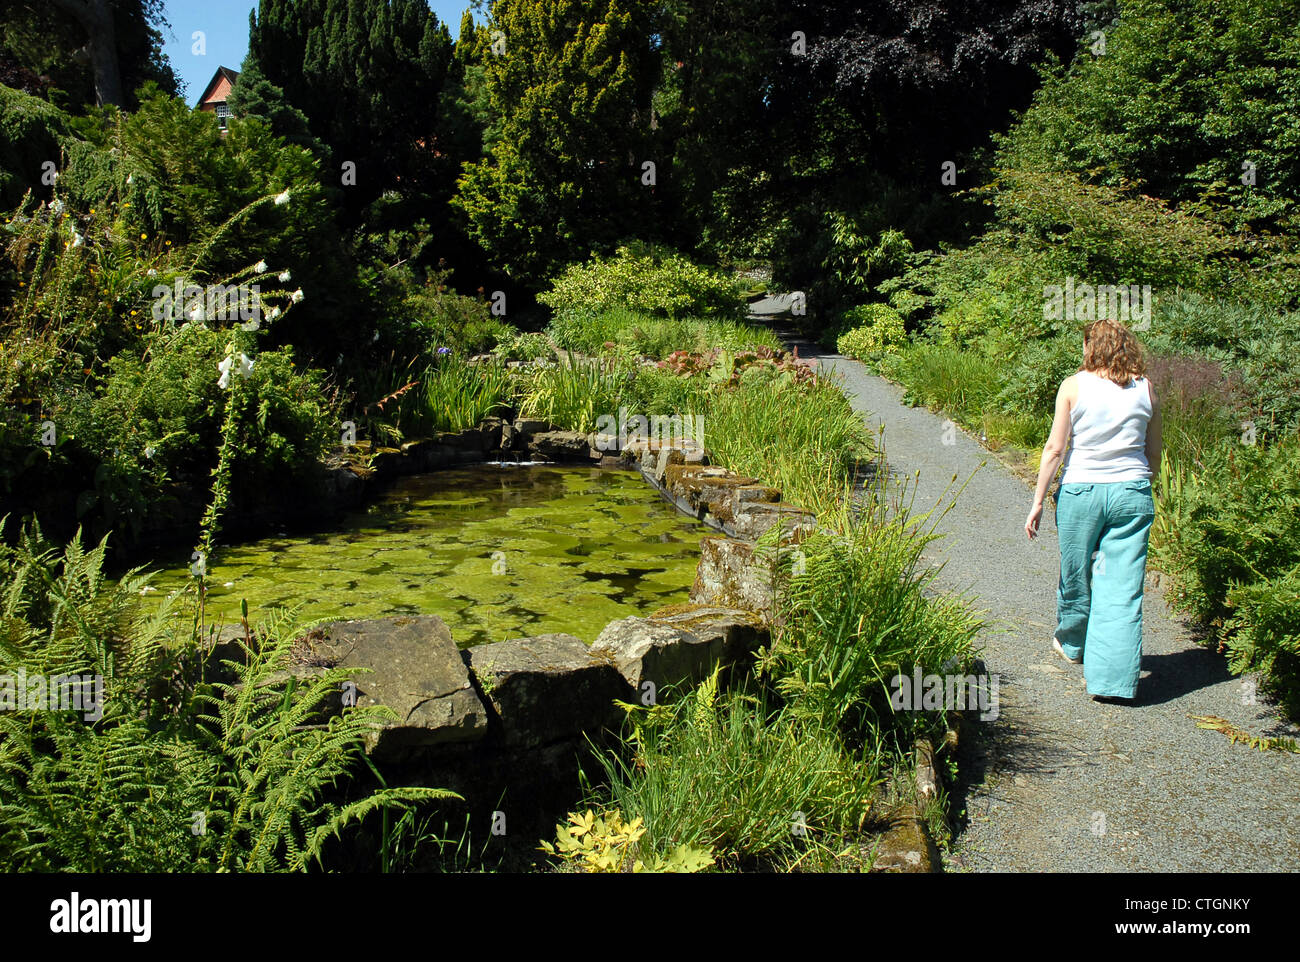 A woman walks by  a pool at Hergest Croft Gardens, Kington, Herefordshire. - Stock Image